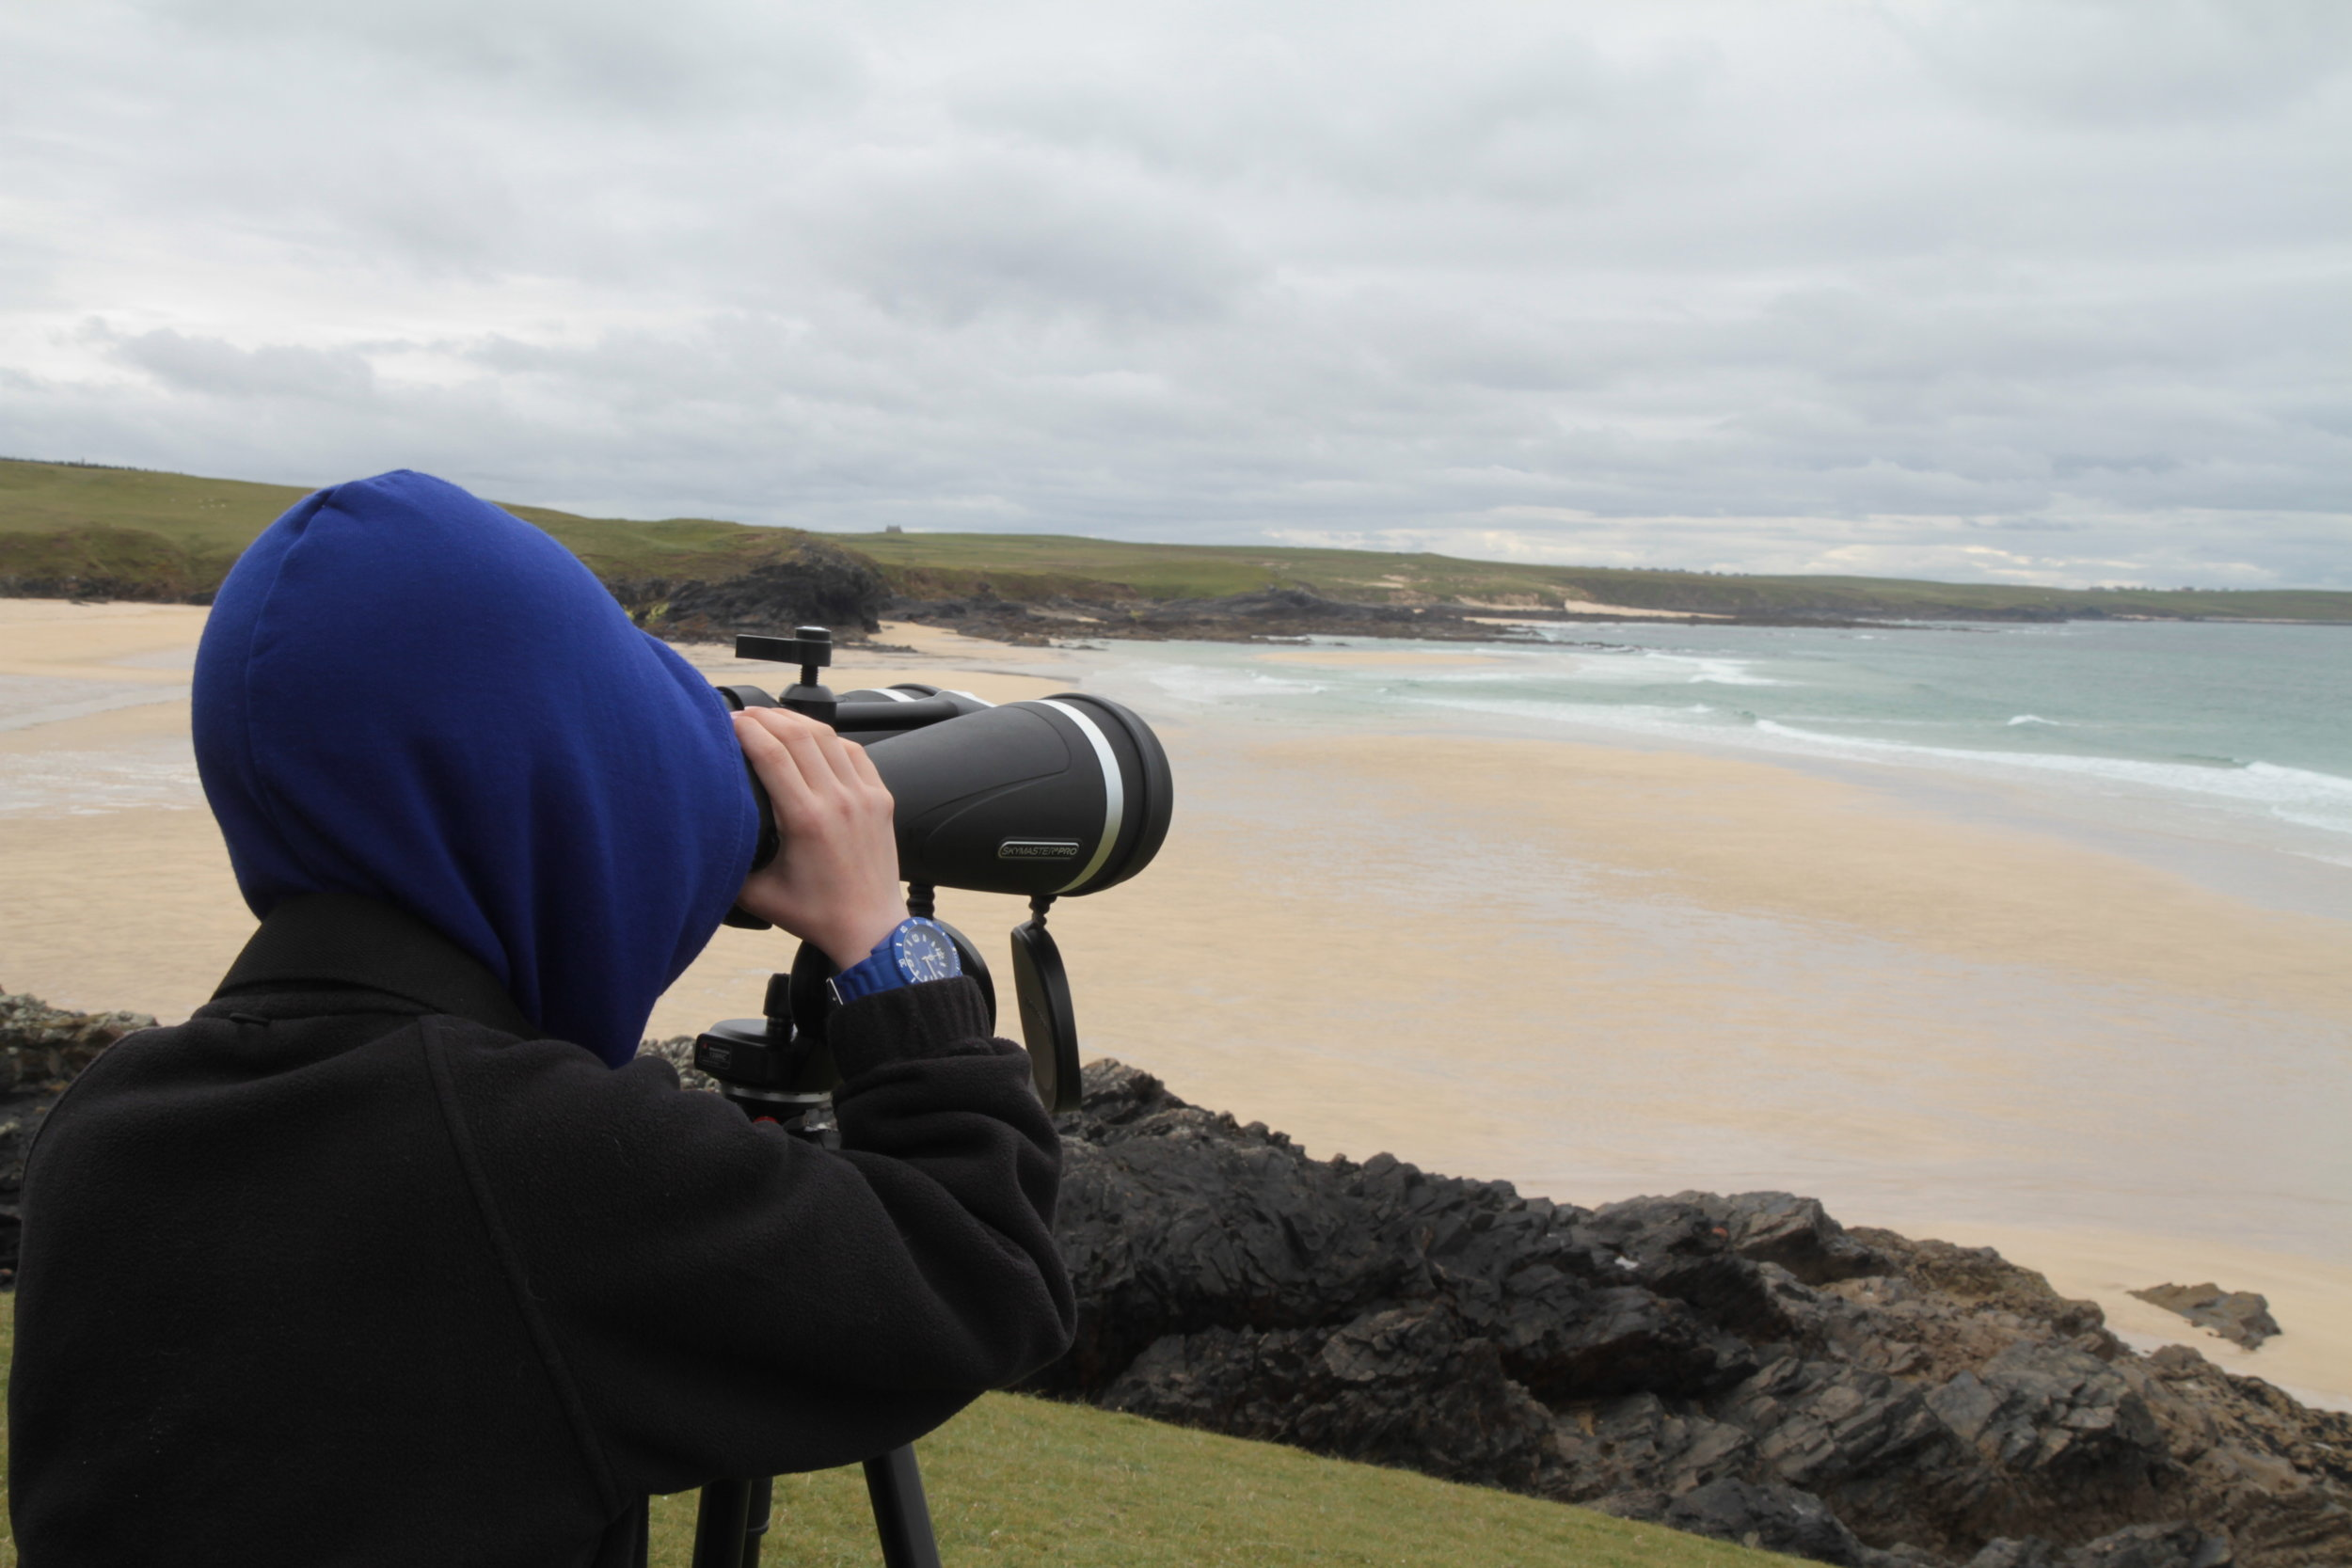 Pupil from a past school visit takes part in a headland watch.